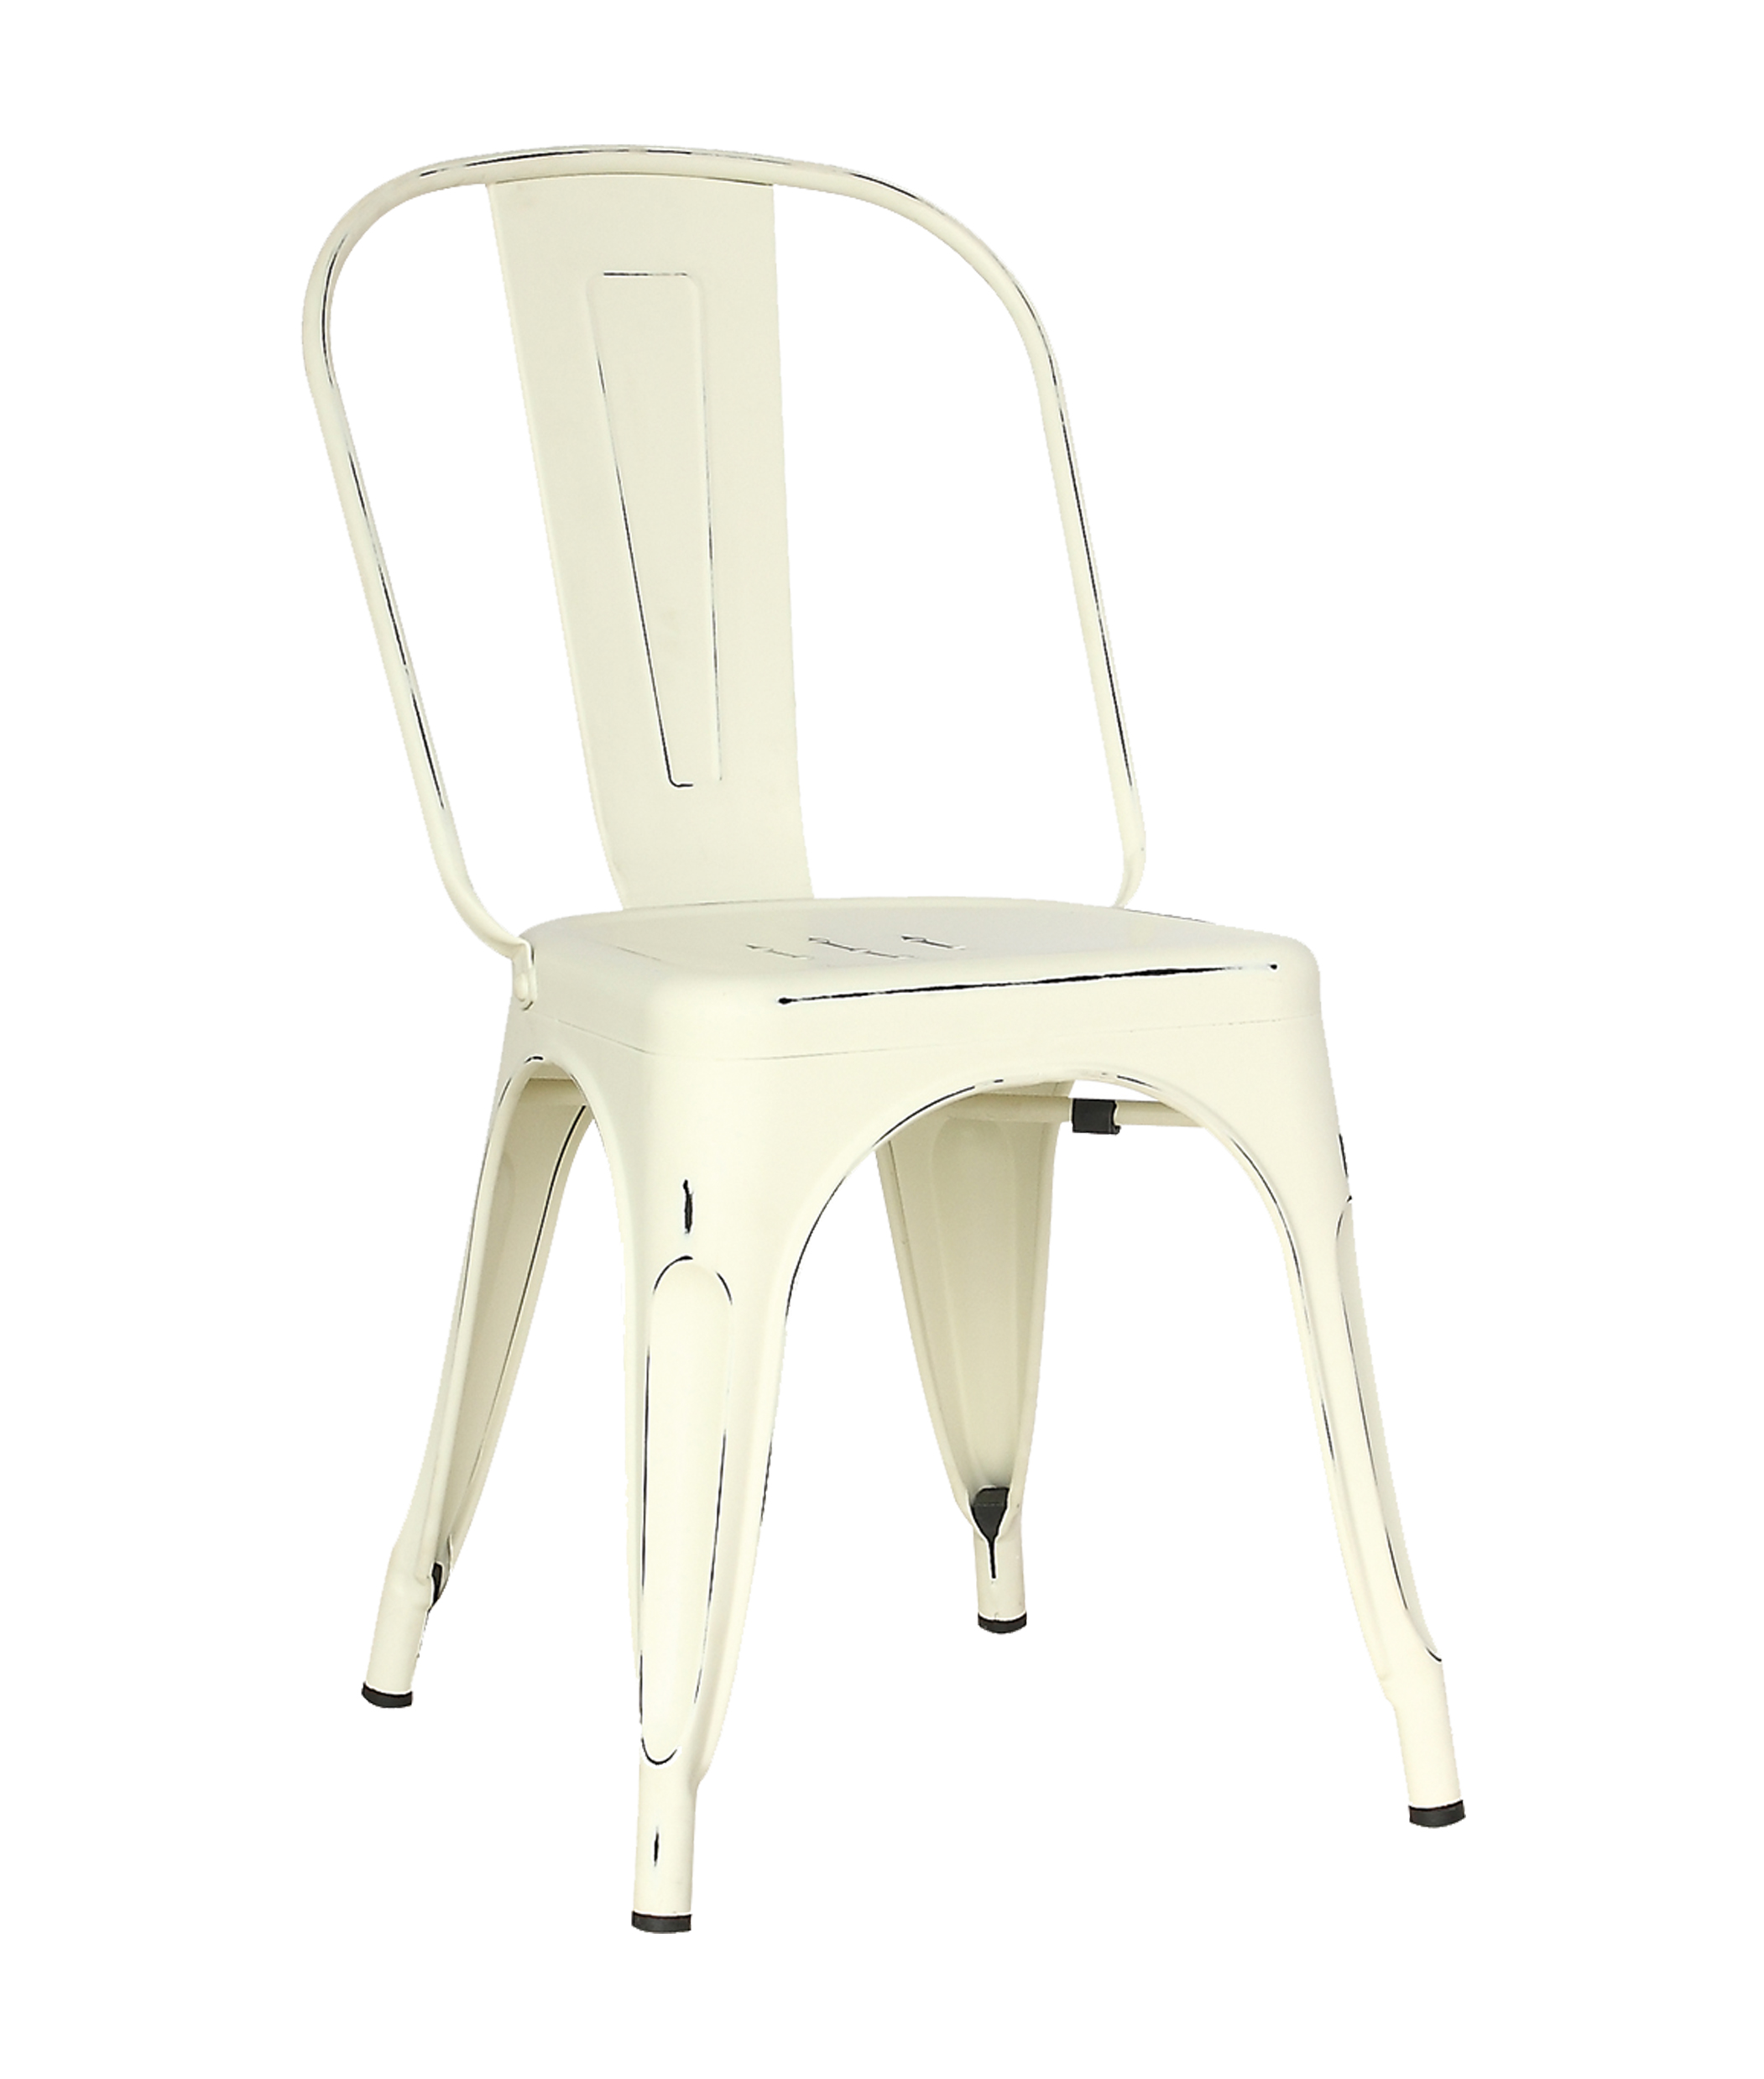 <p>Outdoor Furniture Contemporary Collection – Laredo Side Chair – Antique Cream Finish</p> <p> </p> <p>Side Chair – metal seat & stackable, designed for indoor and outdoor use capturing essential features such as lightness, stability, functionality, ergonomics and care for the environment. Comfort, Modernity, style and durability</p>